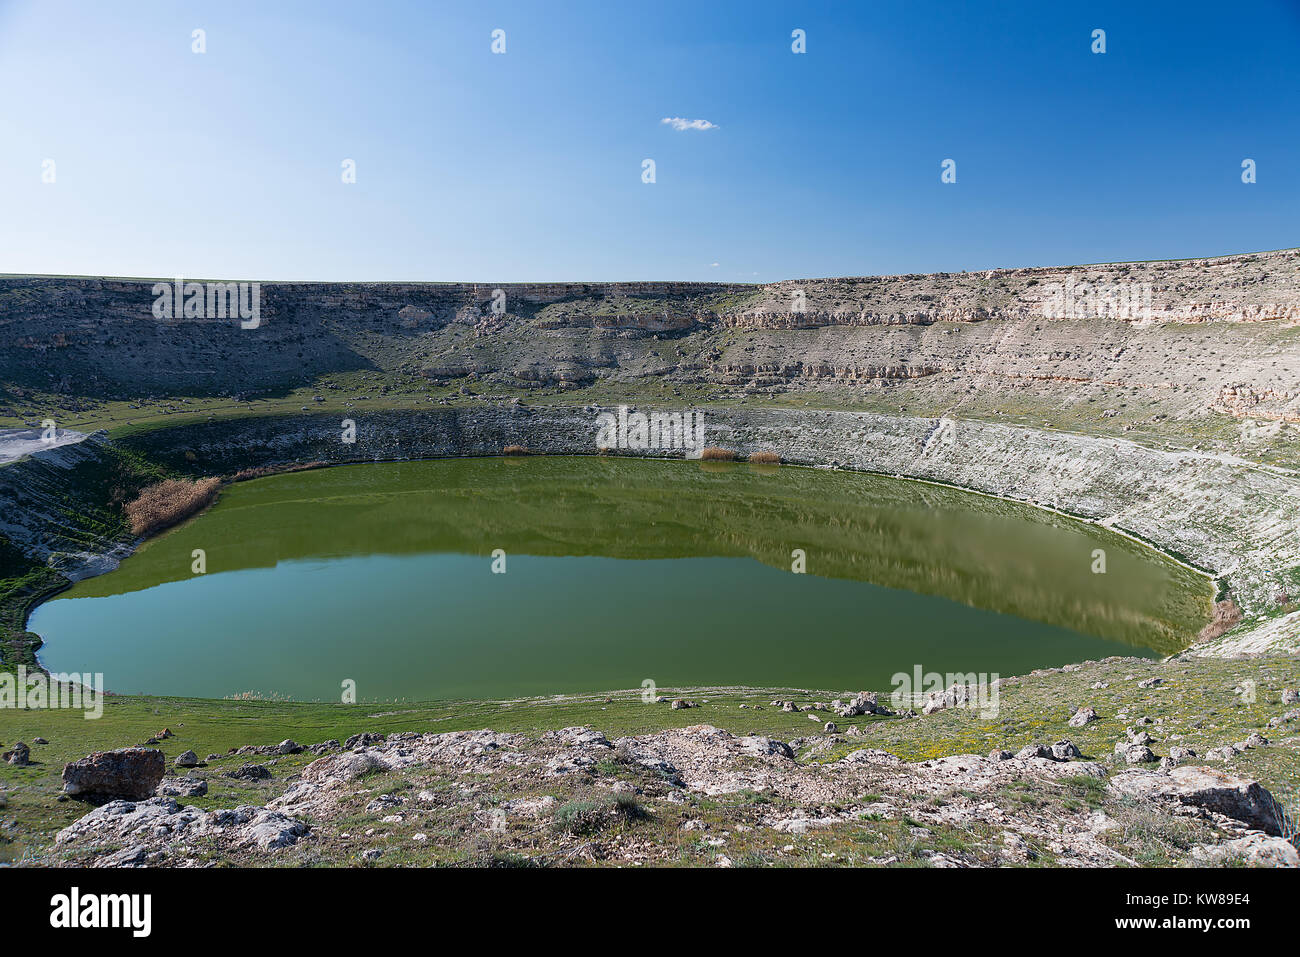 Sinkholes around Konya province of Turkey - Stock Image